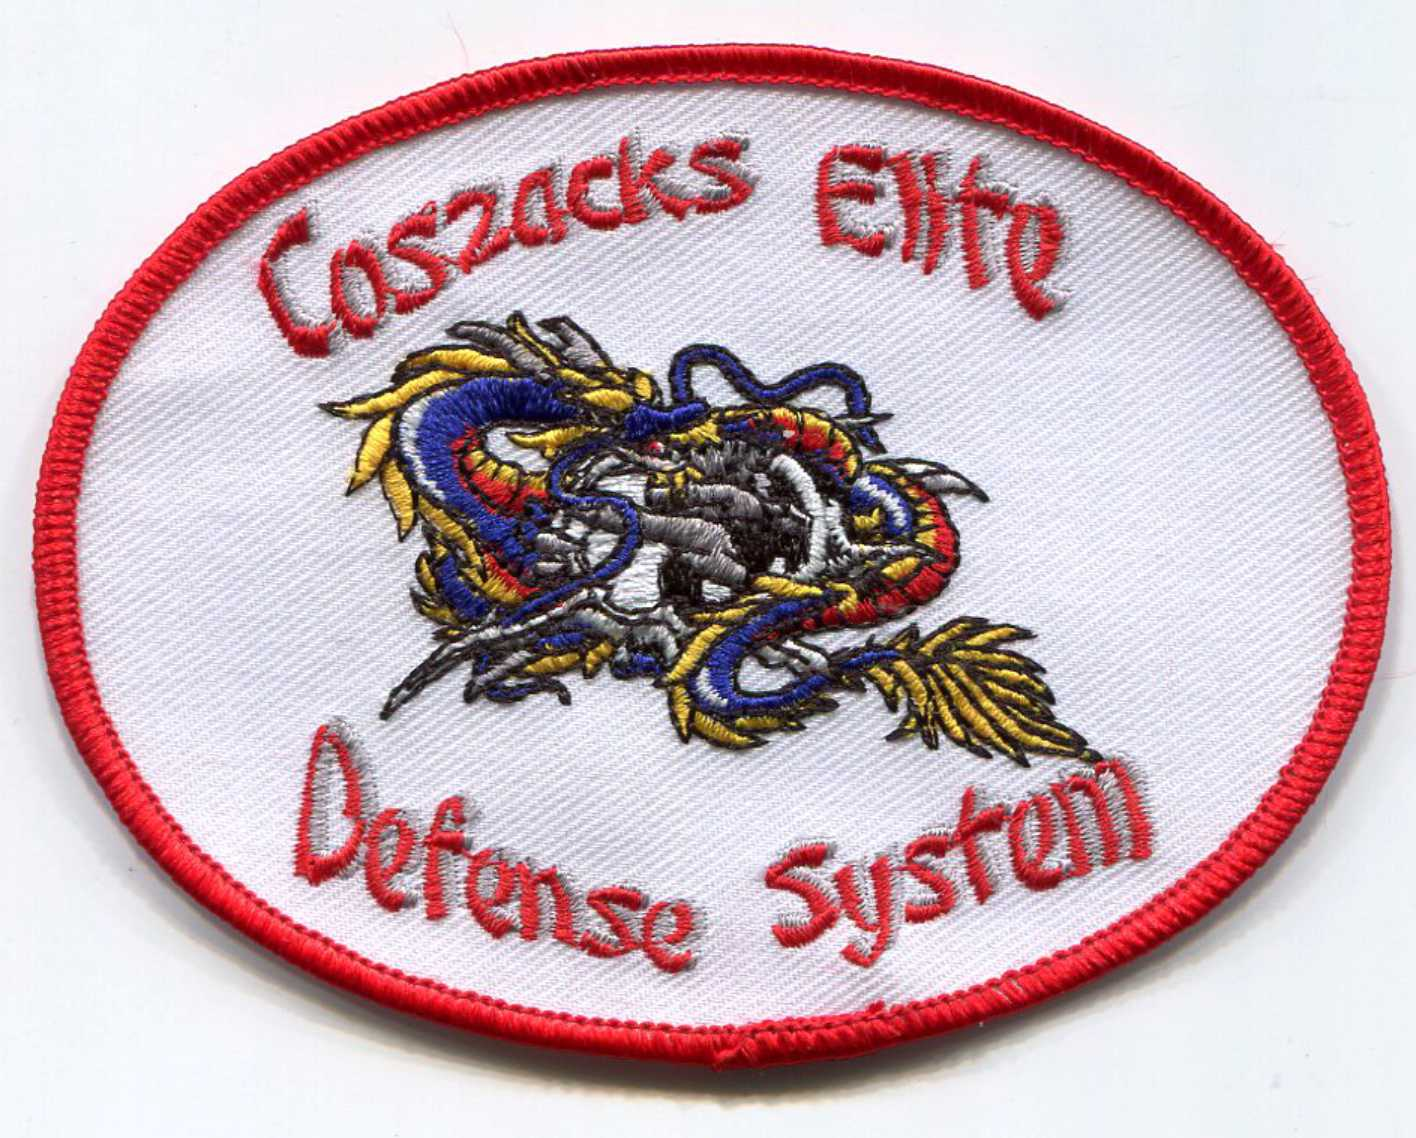 Coszacks Patch $7 for Coszacks students only